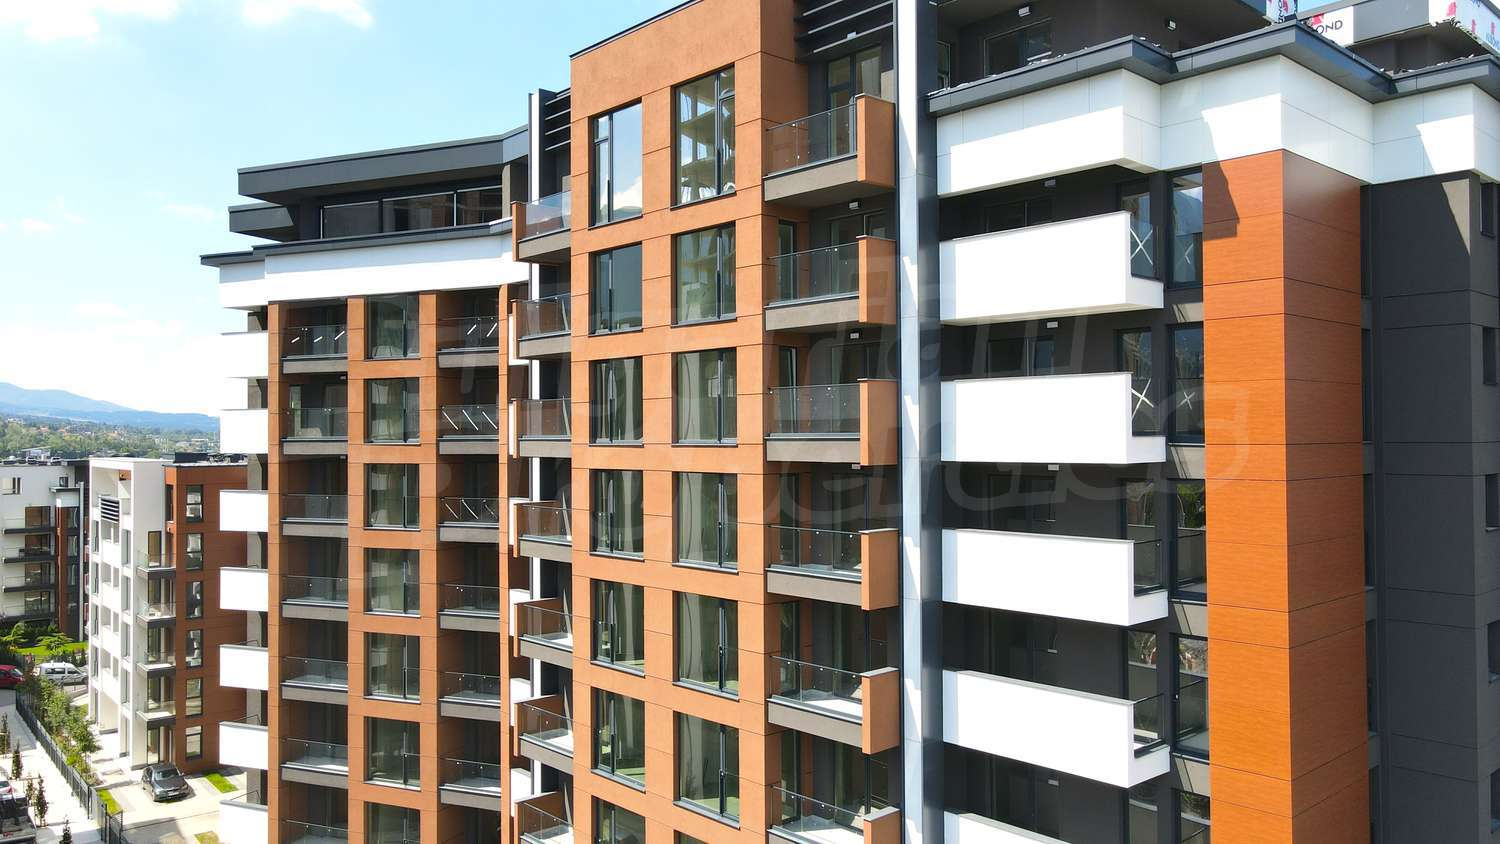 Elegant residential complex in sofia new buildings with for Contemporary residential buildings